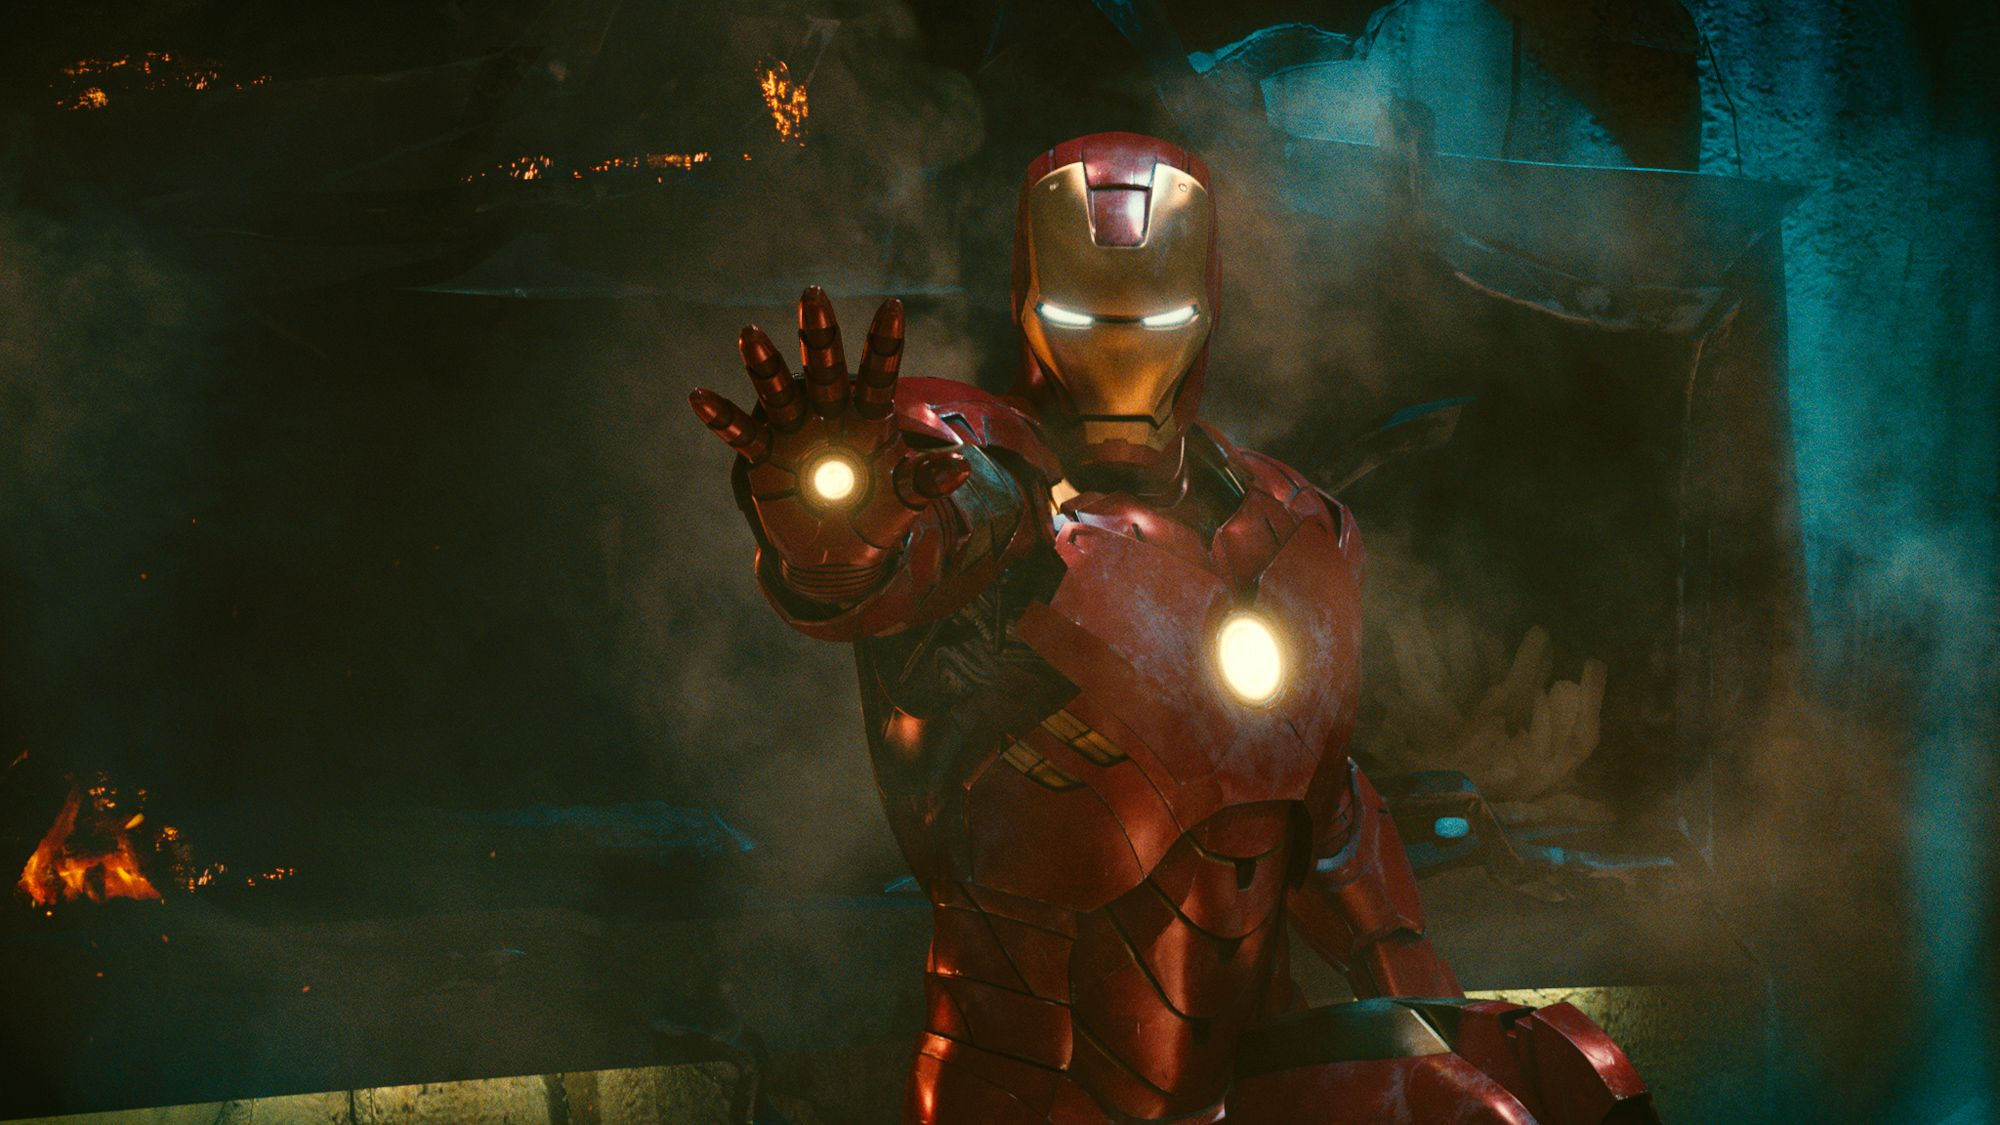 Iron Man 2: 10 New IRON MAN 2 Images In High Resolution